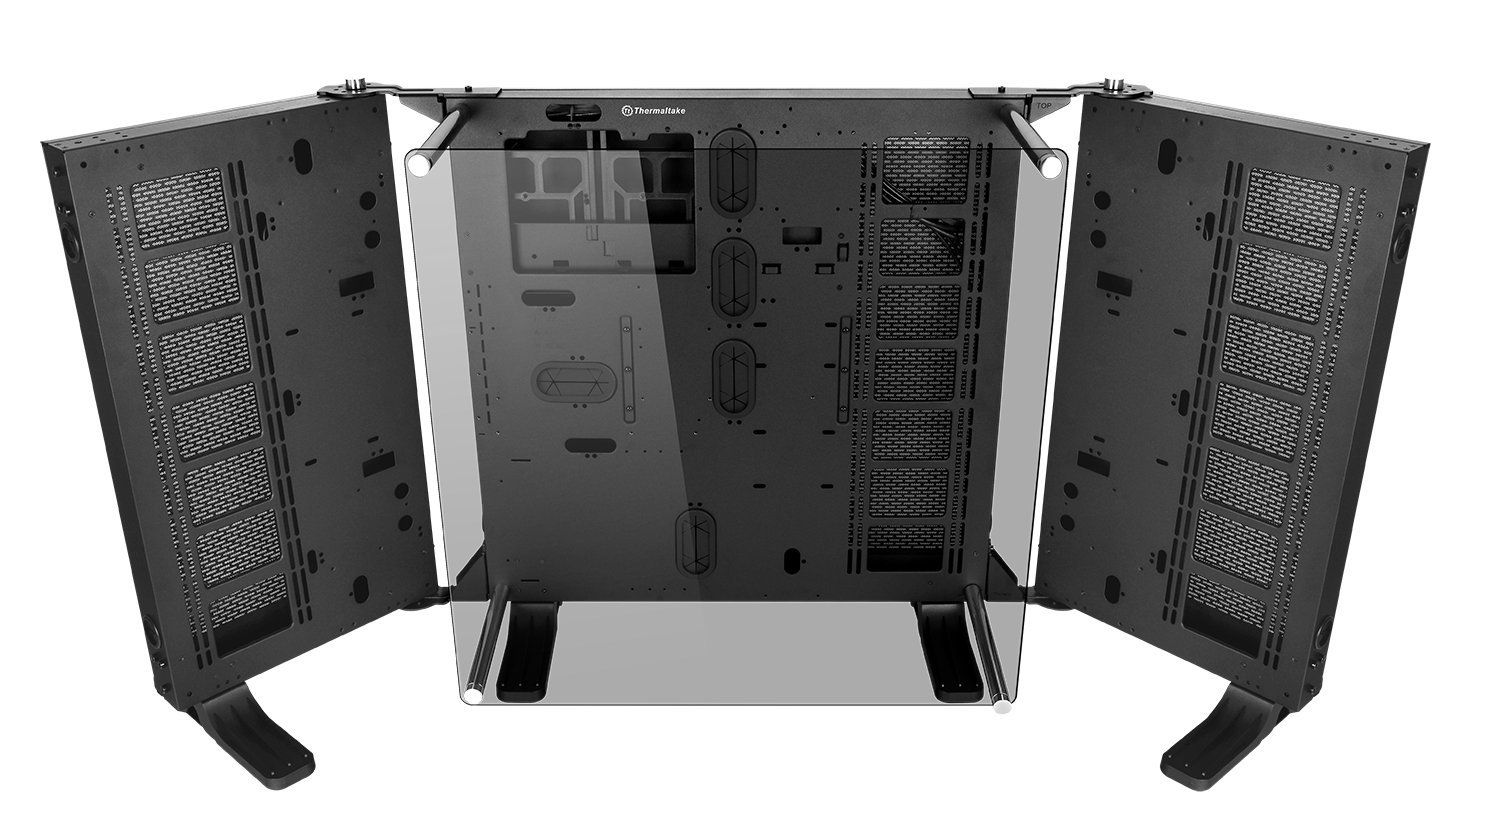 Thermaltake Core P7 Tempered Glass Edition E-ATX Open Frame Panoramic Viewing Tt LCS Certified Gaming Computer Chassis CA-1I2-00F1WN-00 by Thermaltake (Image #1)